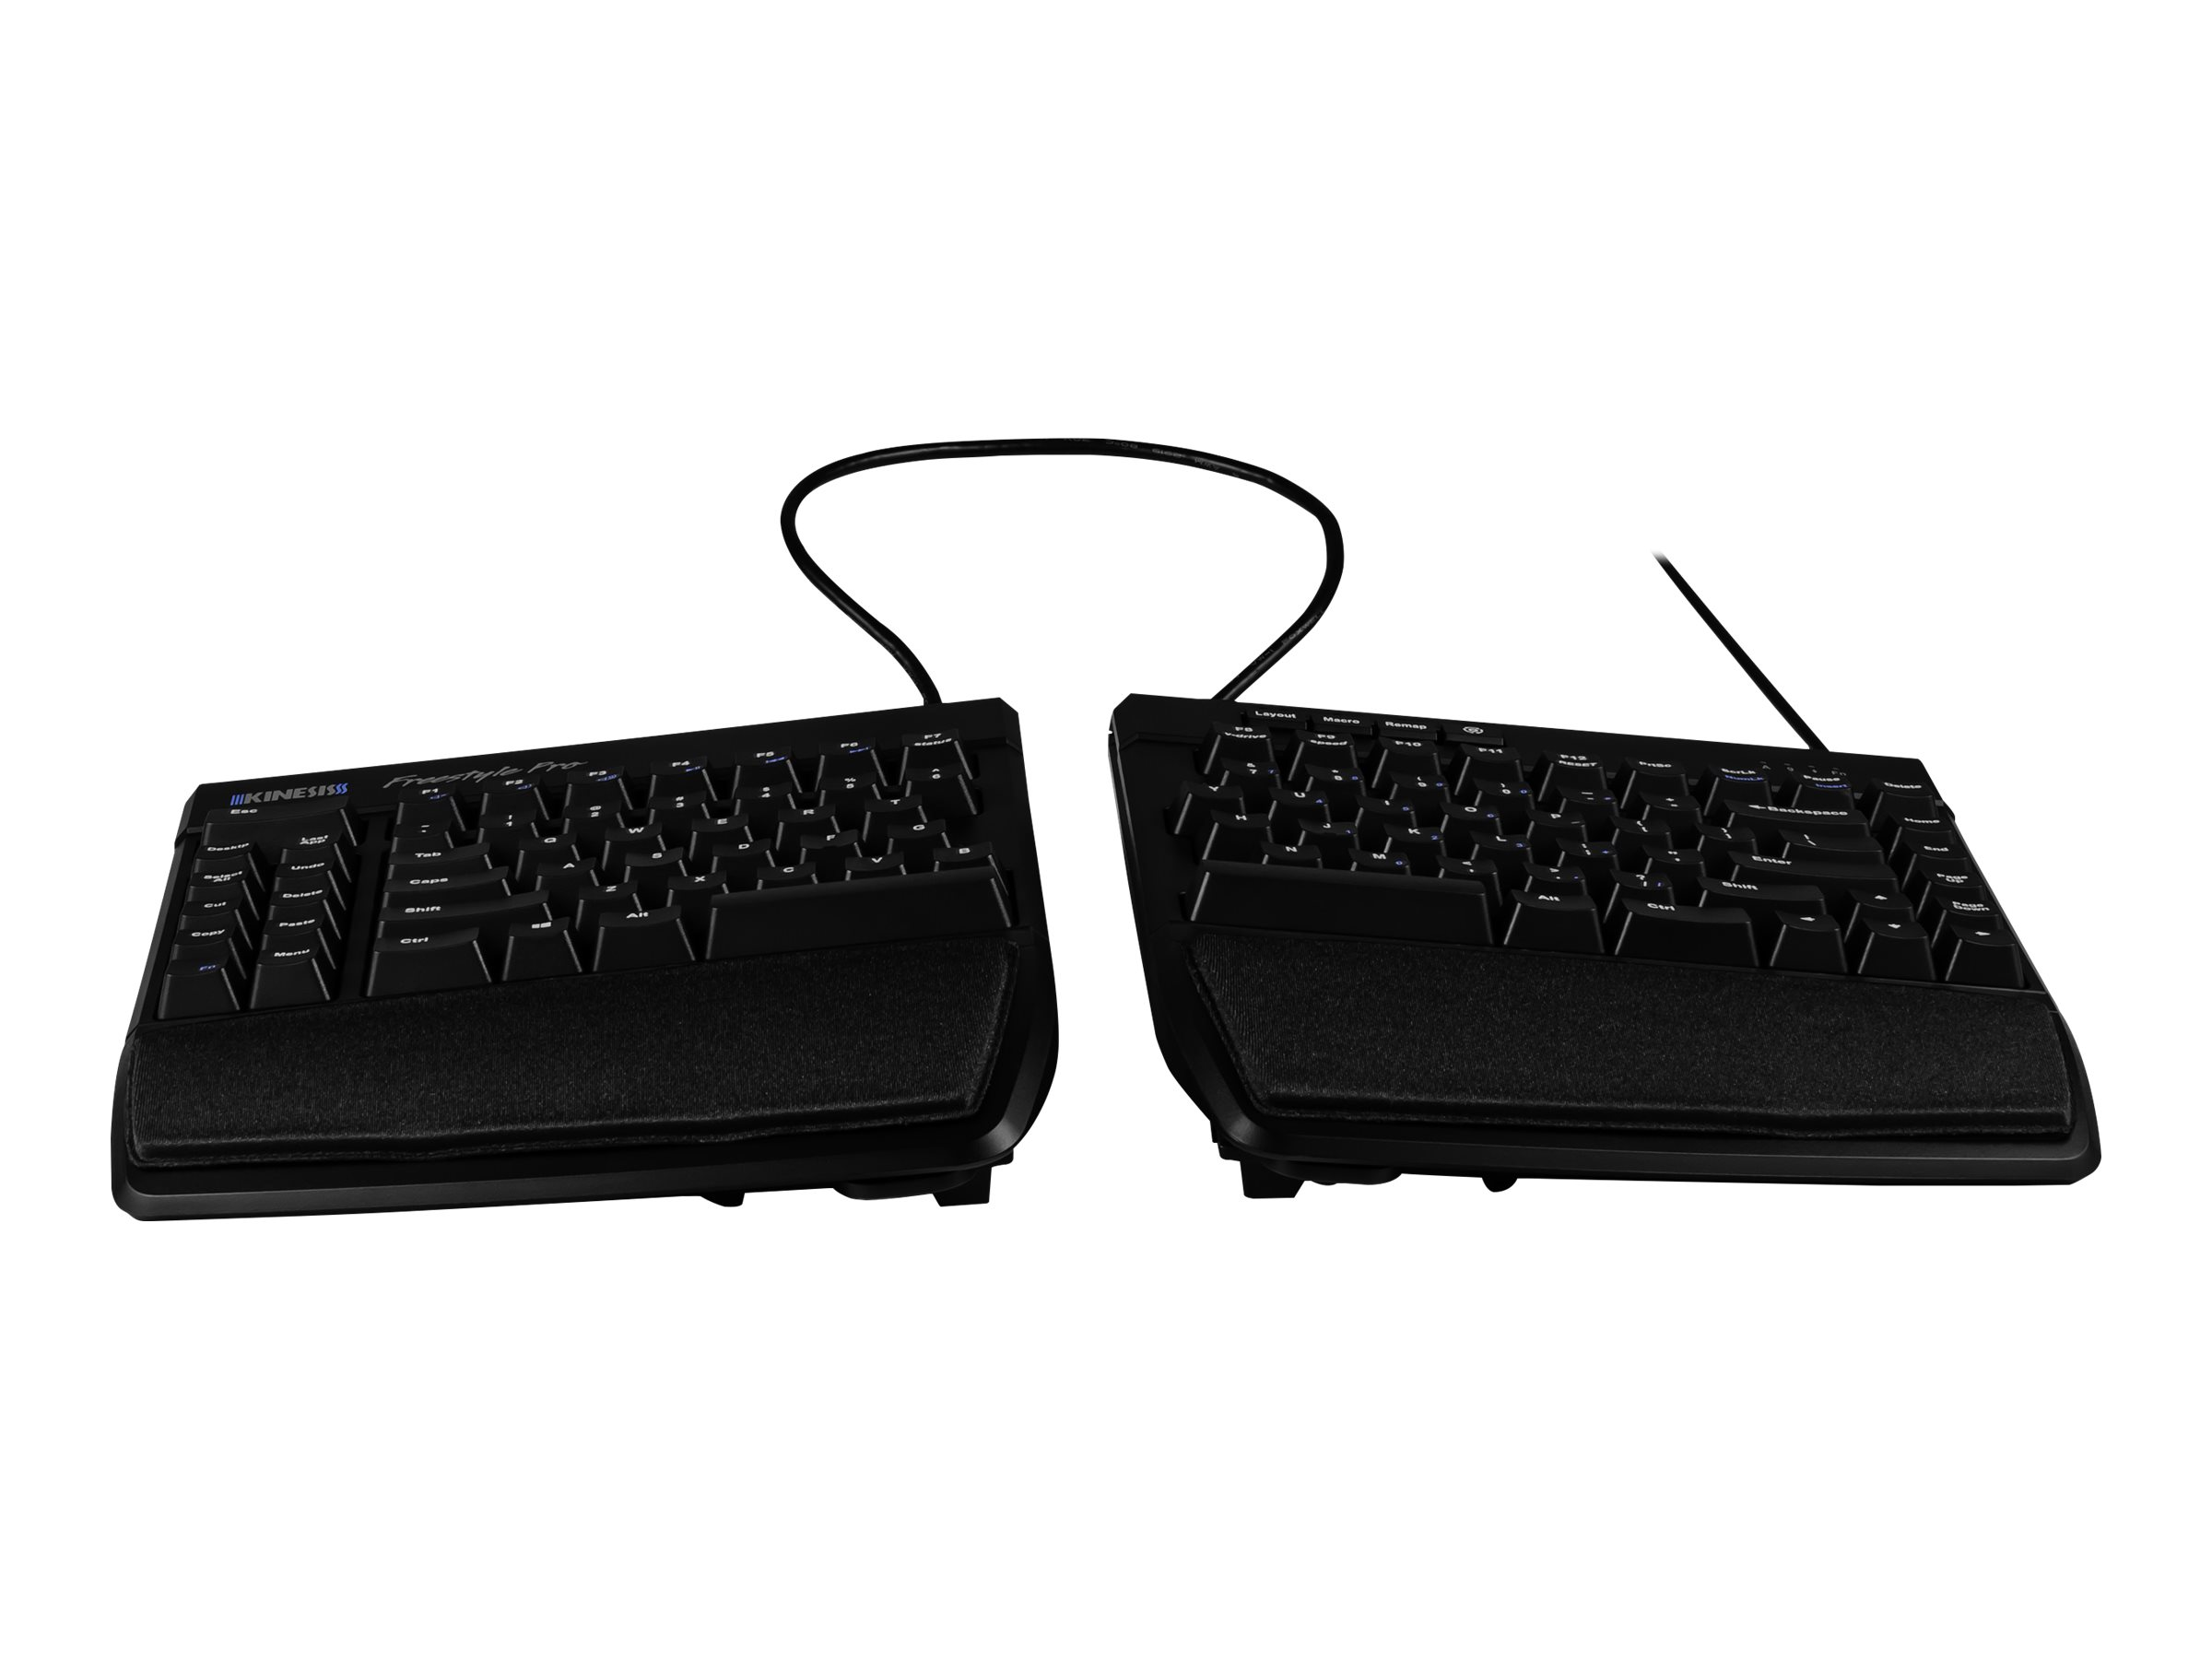 Kinesis Freestyle VIP3 Pro Accessory - keyboard accessories kit